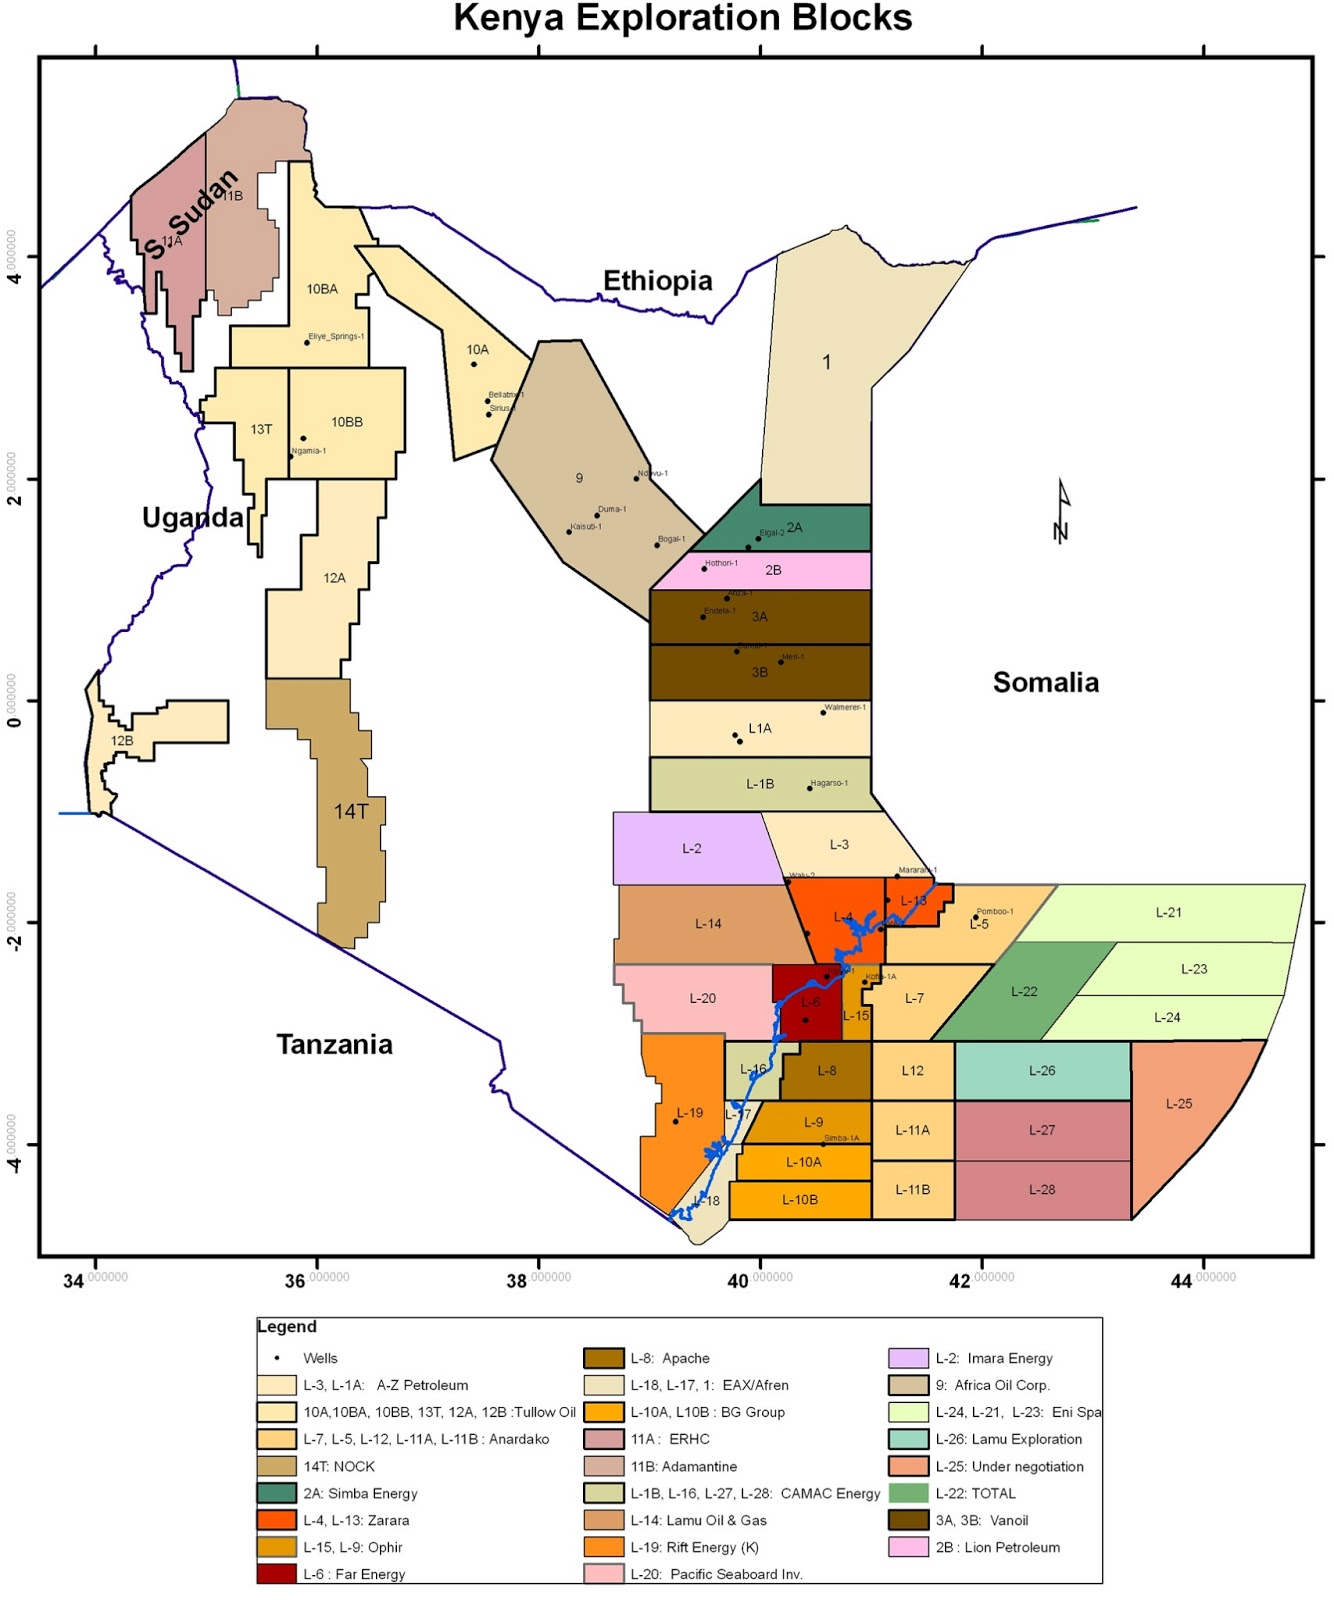 Exploration Block Map of Kenya: Government of Kenya Revised Edition 2006  (courtesy of national oil)